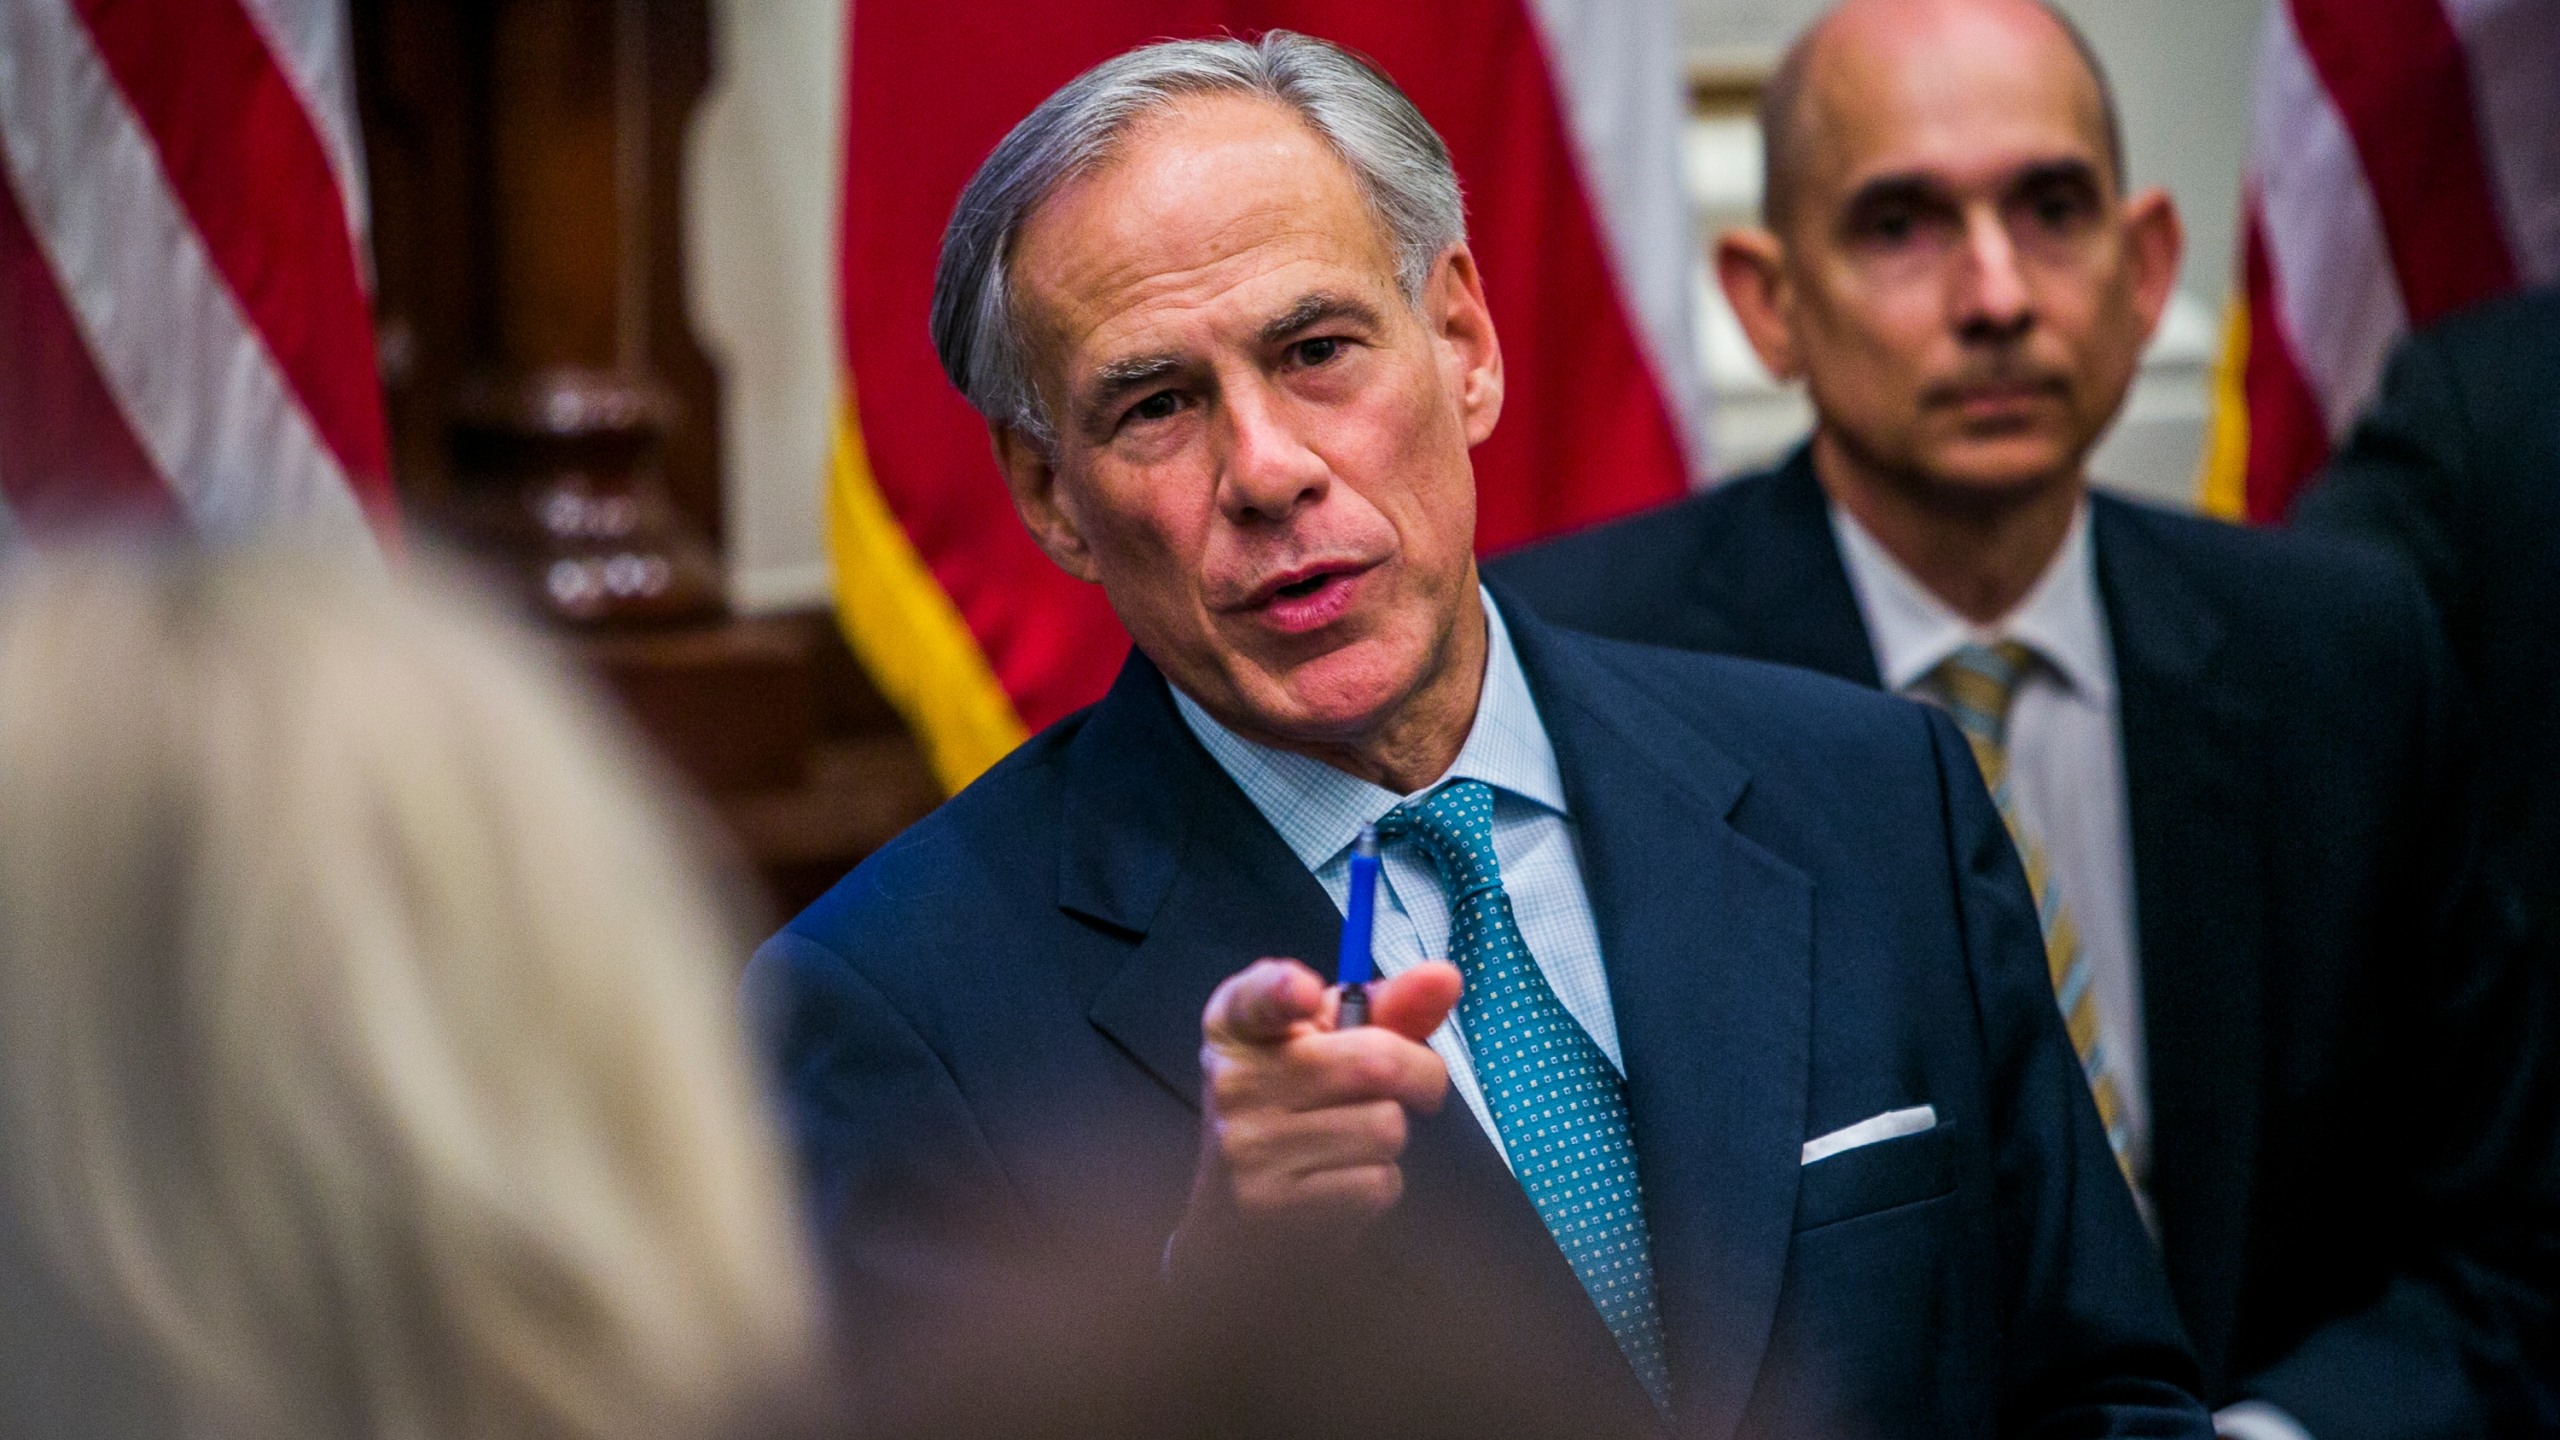 Texas Gov. Greg Abbott holds a roundtable discussion with victims, family, and friends affected by the Santa Fe, Texas school shooting at the state capital on May 24, 2018, in Austin, Texas. (Credit: Drew Anthony Smith/Getty Images)